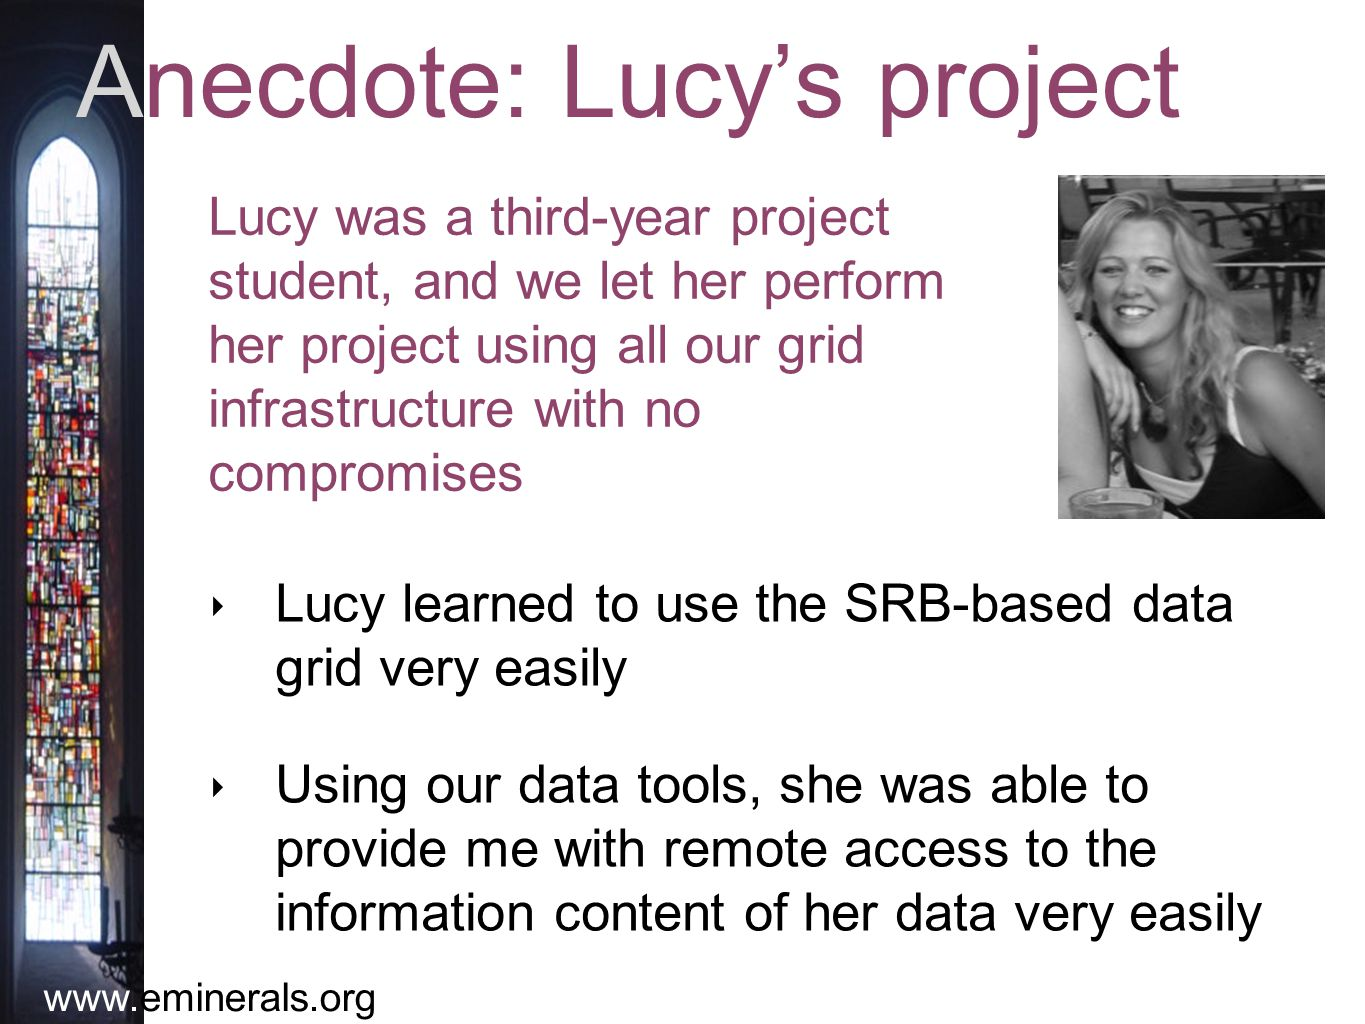 www.eminerals.org Anecdote: Lucy's project ‣ Lucy learned to use the SRB-based data grid very easily ‣ Using our data tools, she was able to provide me with remote access to the information content of her data very easily Lucy was a third-year project student, and we let her perform her project using all our grid infrastructure with no compromises